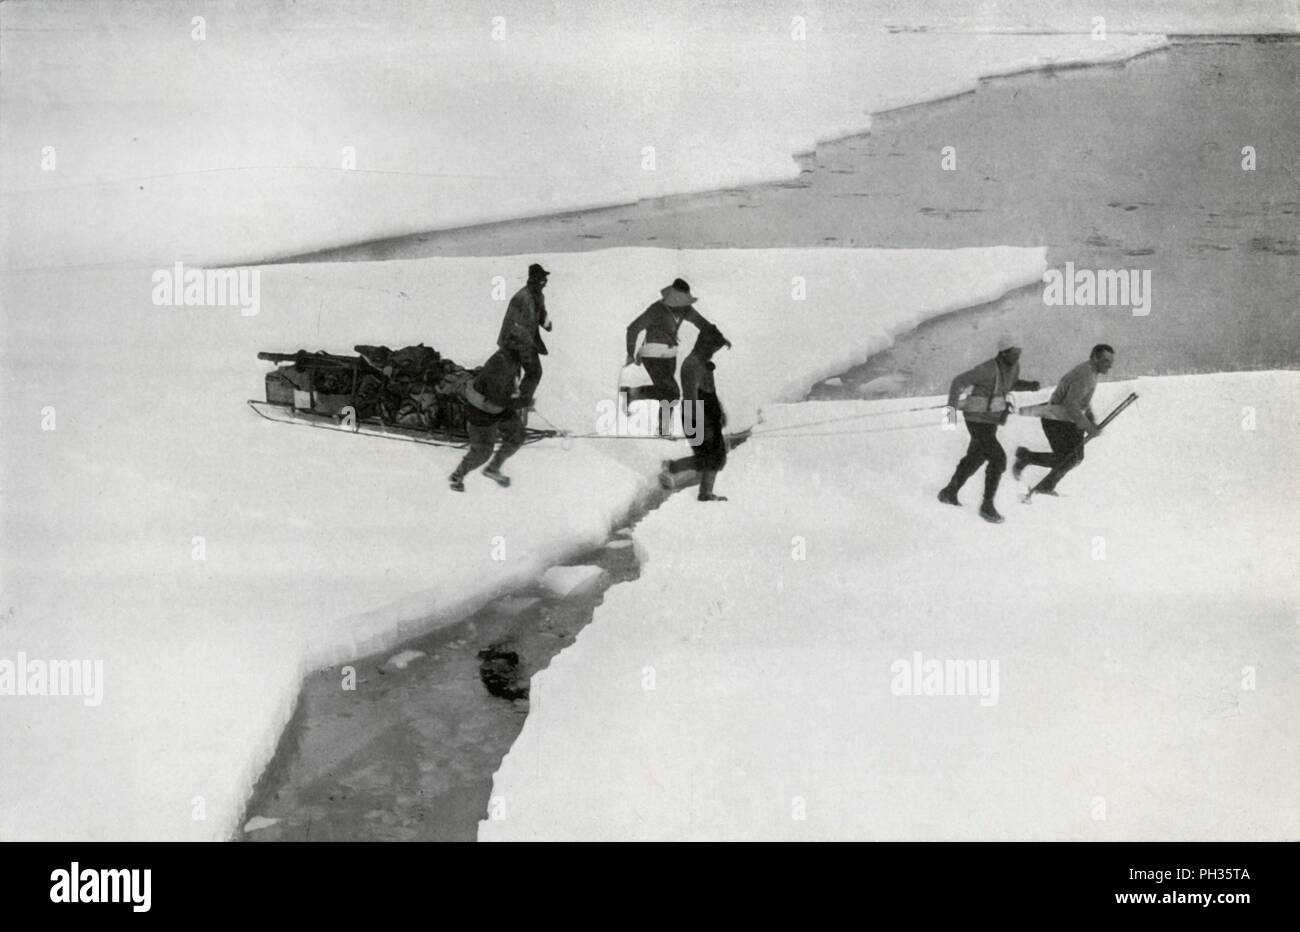 'The Relief of the Western Party by the 'Terra Nova' Off the Mouth of the Koettlitz Glacier', 18 February 2012, (1913). T Griffith Taylor, Frank Debenham, Tryggve Gran and Robert Forde, members of the second geological expedition, were due to be picked up by Terra Nova on 15 January 1912, but the ship could not reach them until over a month later. The final expedition of British Antarctic explorer Captain Robert Falcon Scott (1868-1912) left London on 1 June 1910 bound for the South Pole. The Terra Nova Expedition, officially the British Antarctic Expedition (1910-1913), included a geologist,  - Stock Image